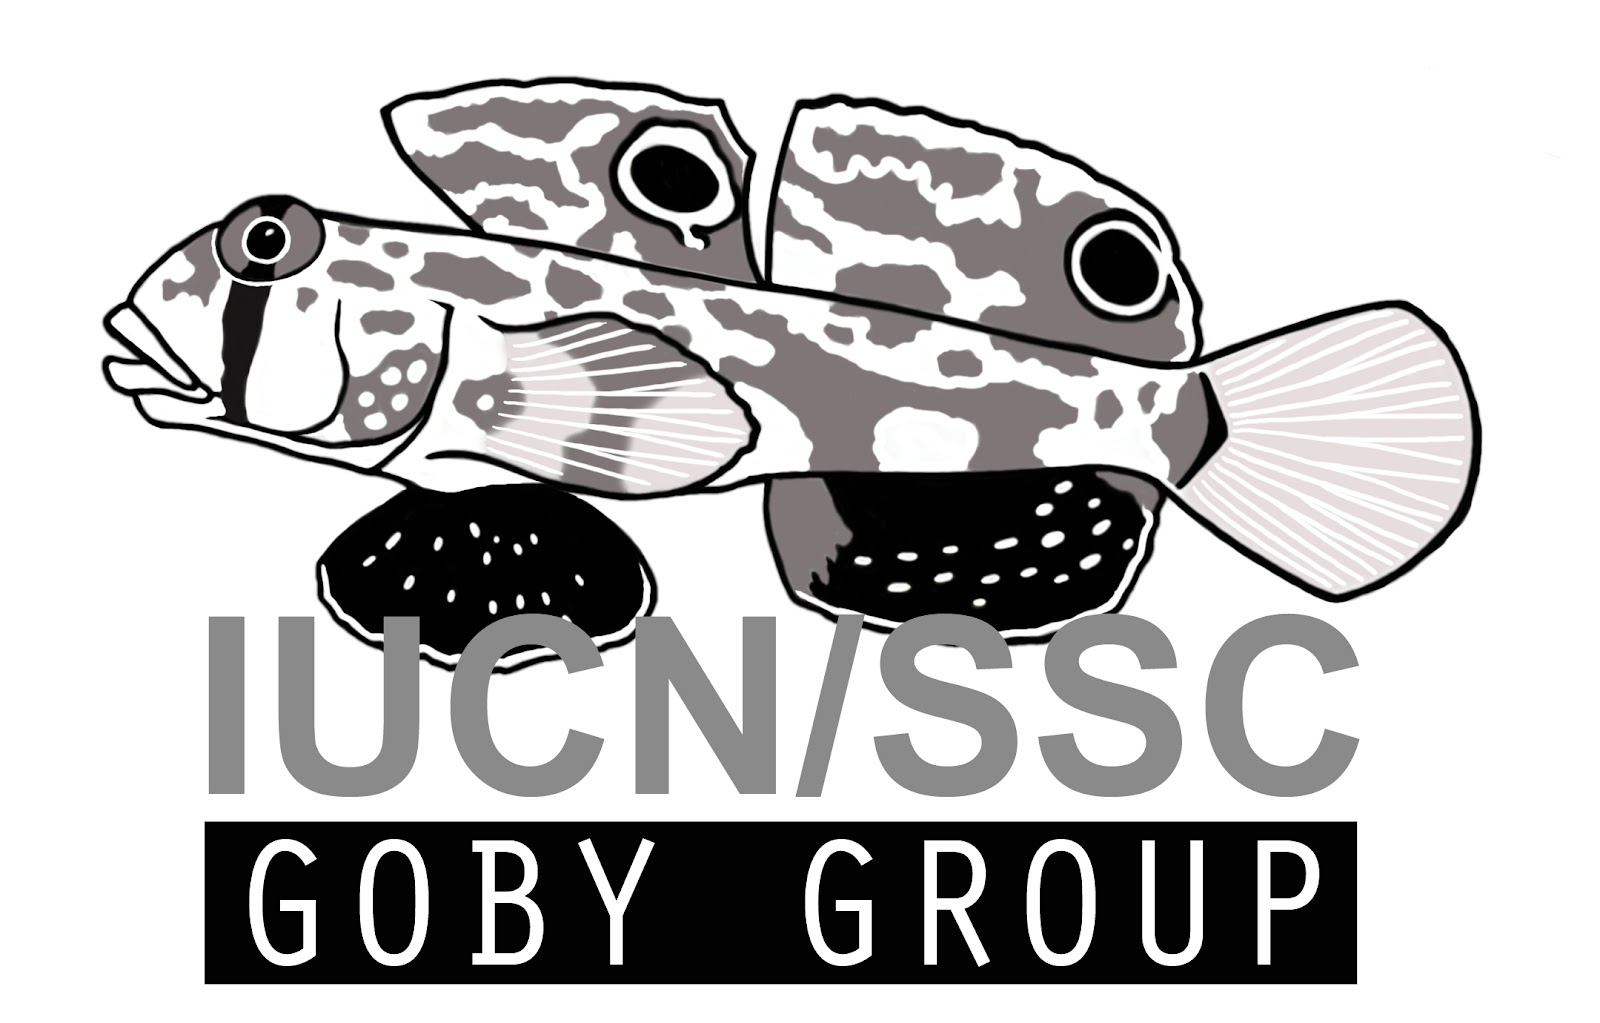 goby group logo 1.jpg